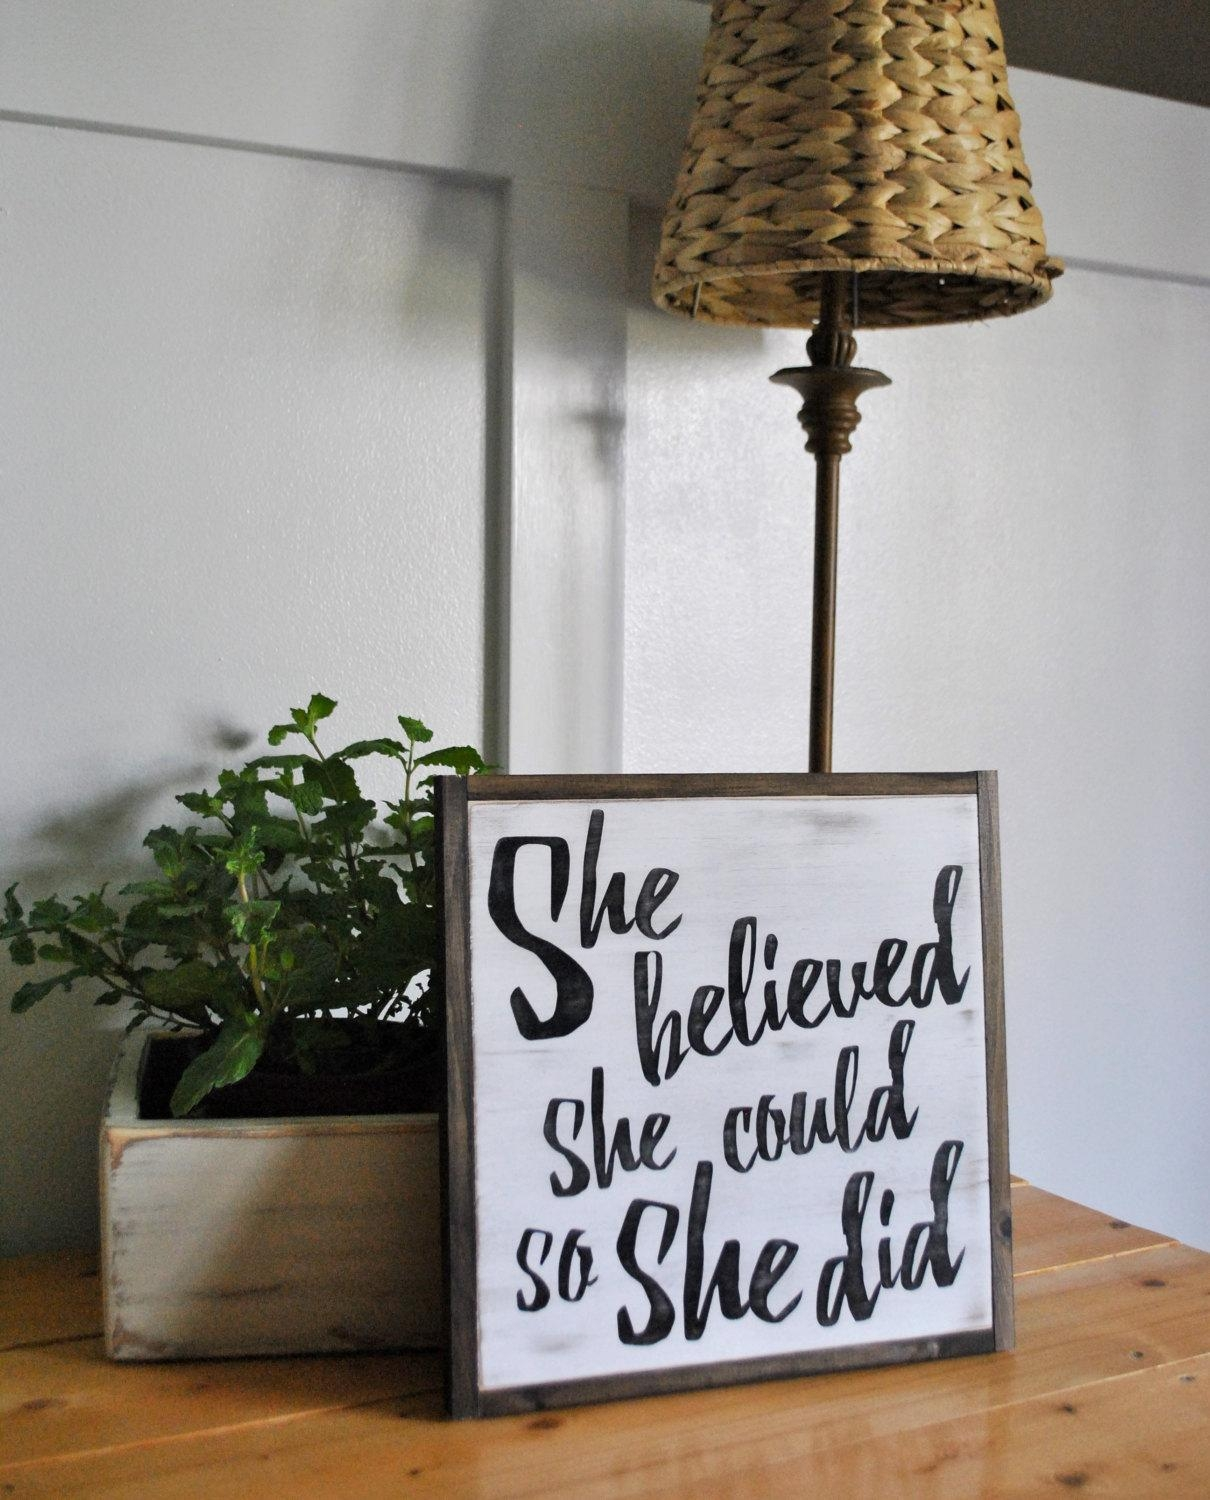 She Believed She Could So She Did 1'x1' Sign | Distressed Shabby Pertaining To She Believed She Could So She Did Wall Art (Image 7 of 20)